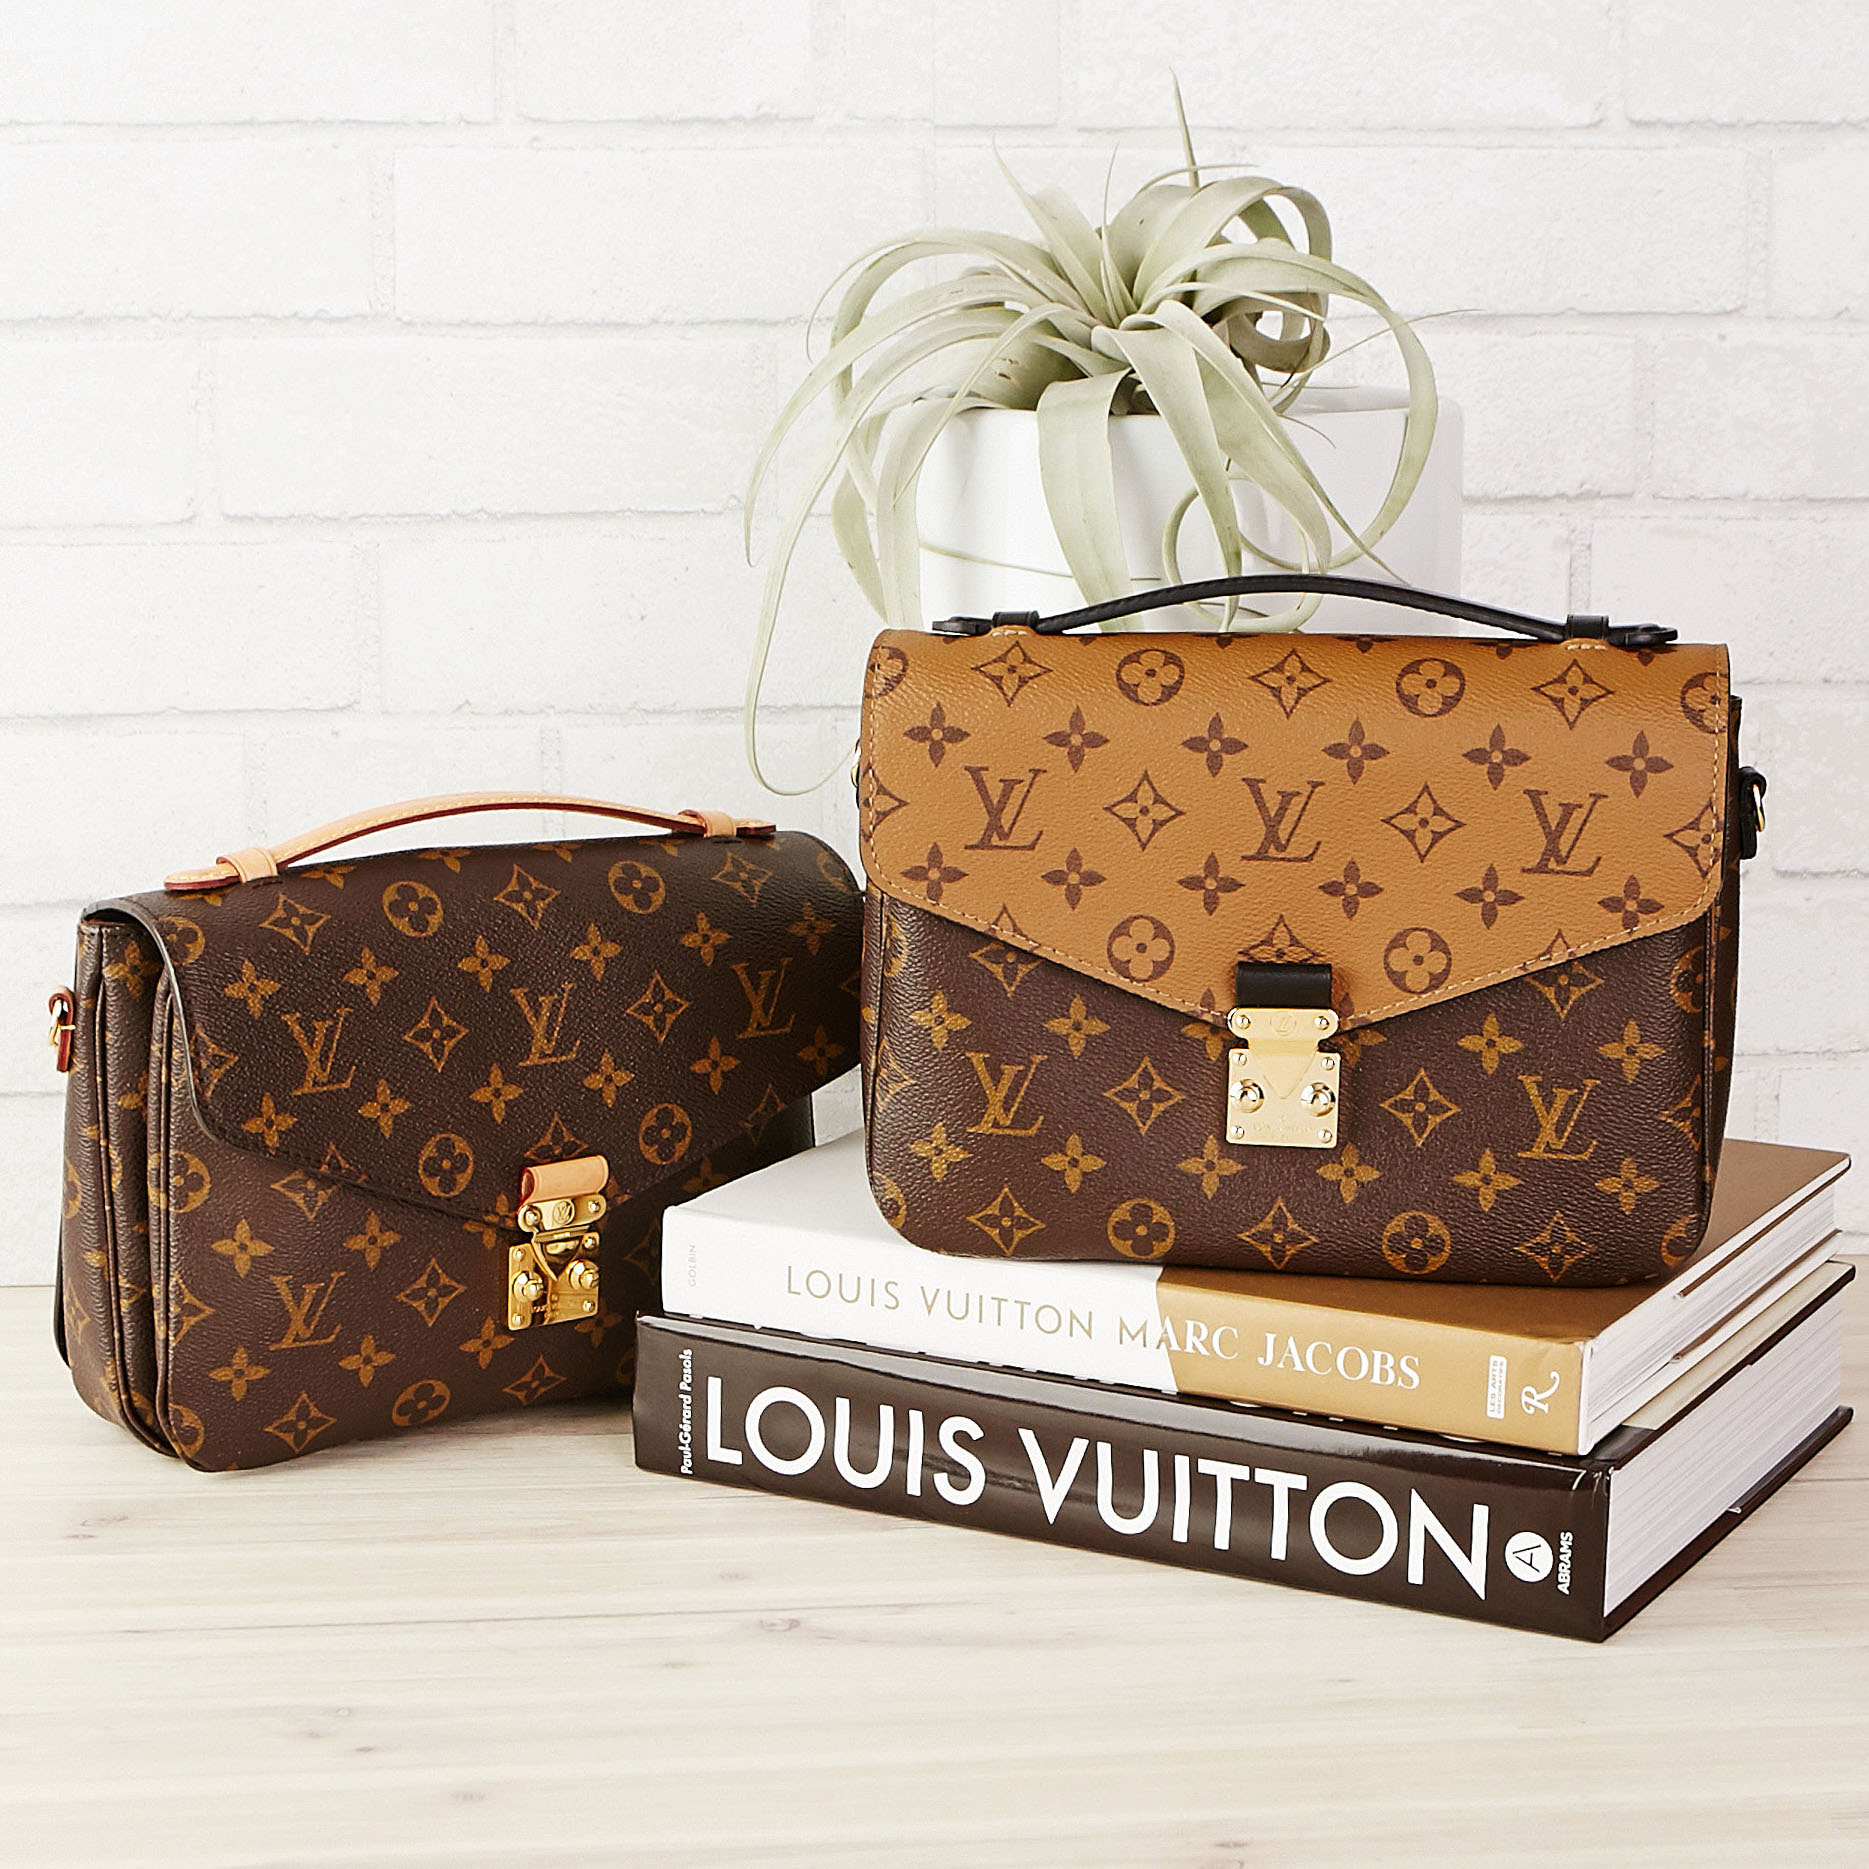 Two Pochette Metis handbags are better than one! Love the Louis Vuitton Pochette Metis in Monogram? Yoogi's Closet does. Shop authenticated pre-owned luxury at yoogiscloset.com